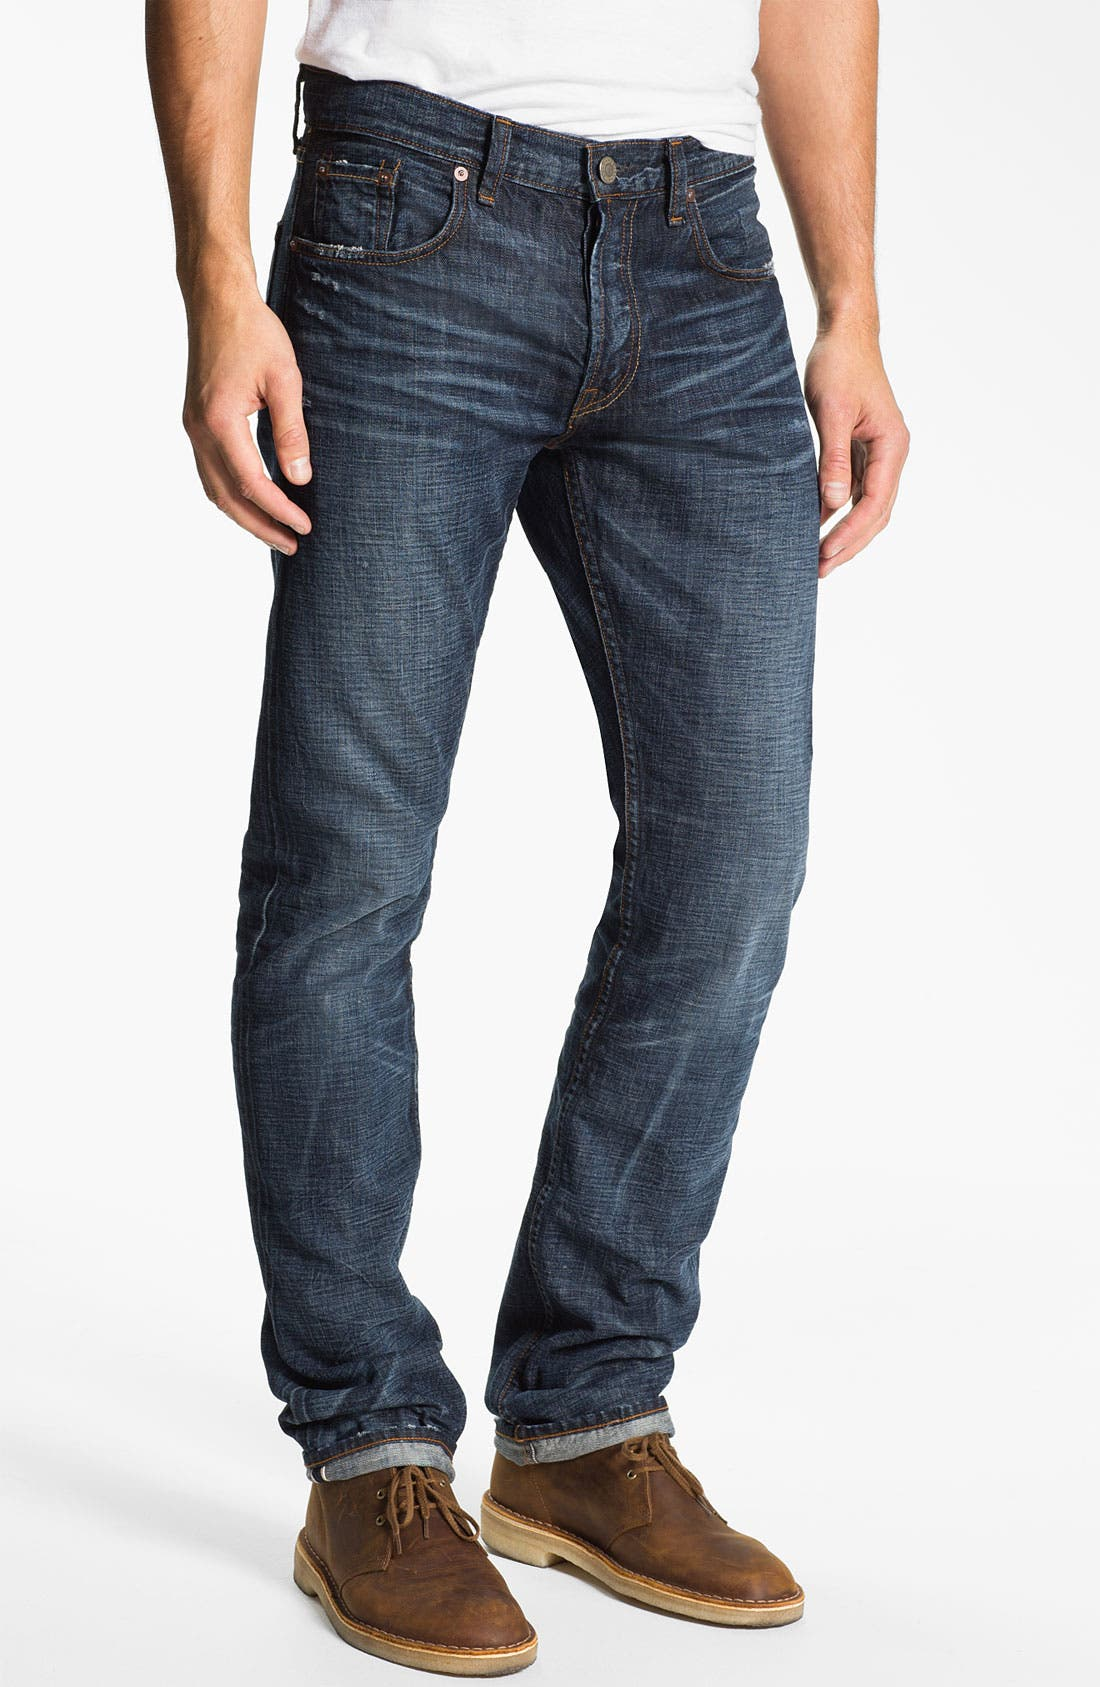 Alternate Image 1 Selected - J Brand 'Kane' Slim Straight Leg Jeans (Memento)